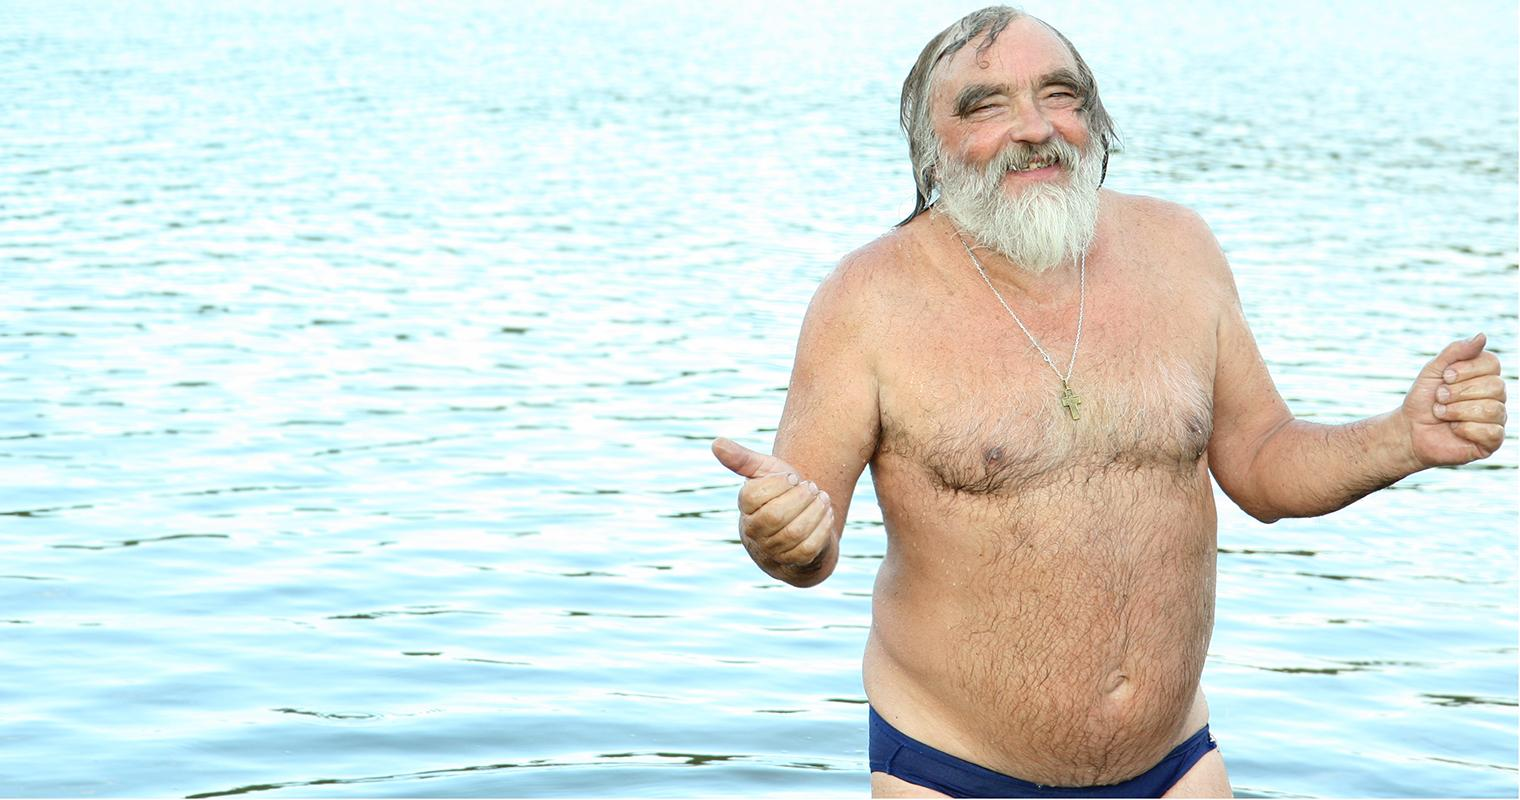 30b13dac2f After the burkini ban, people are asking if France can outlaw fat men in  Speedos too